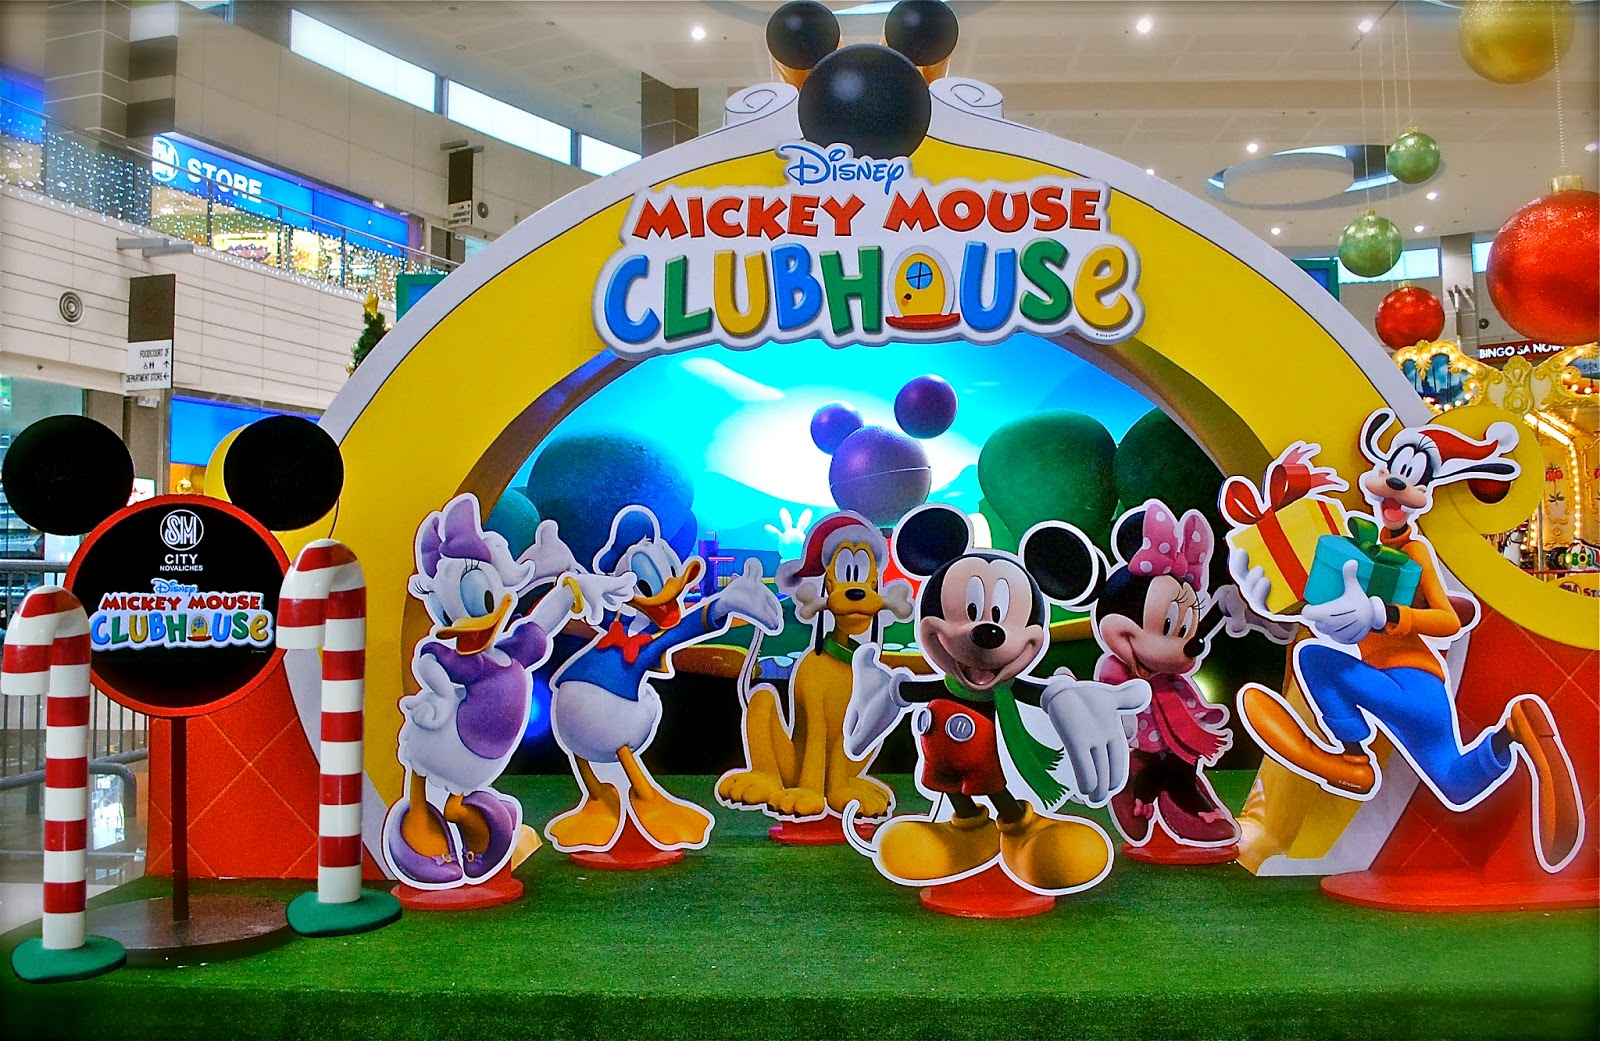 mickey mouse clubhouse christmas launch at sm city novaliches - Mickey Mouse Clubhouse Christmas